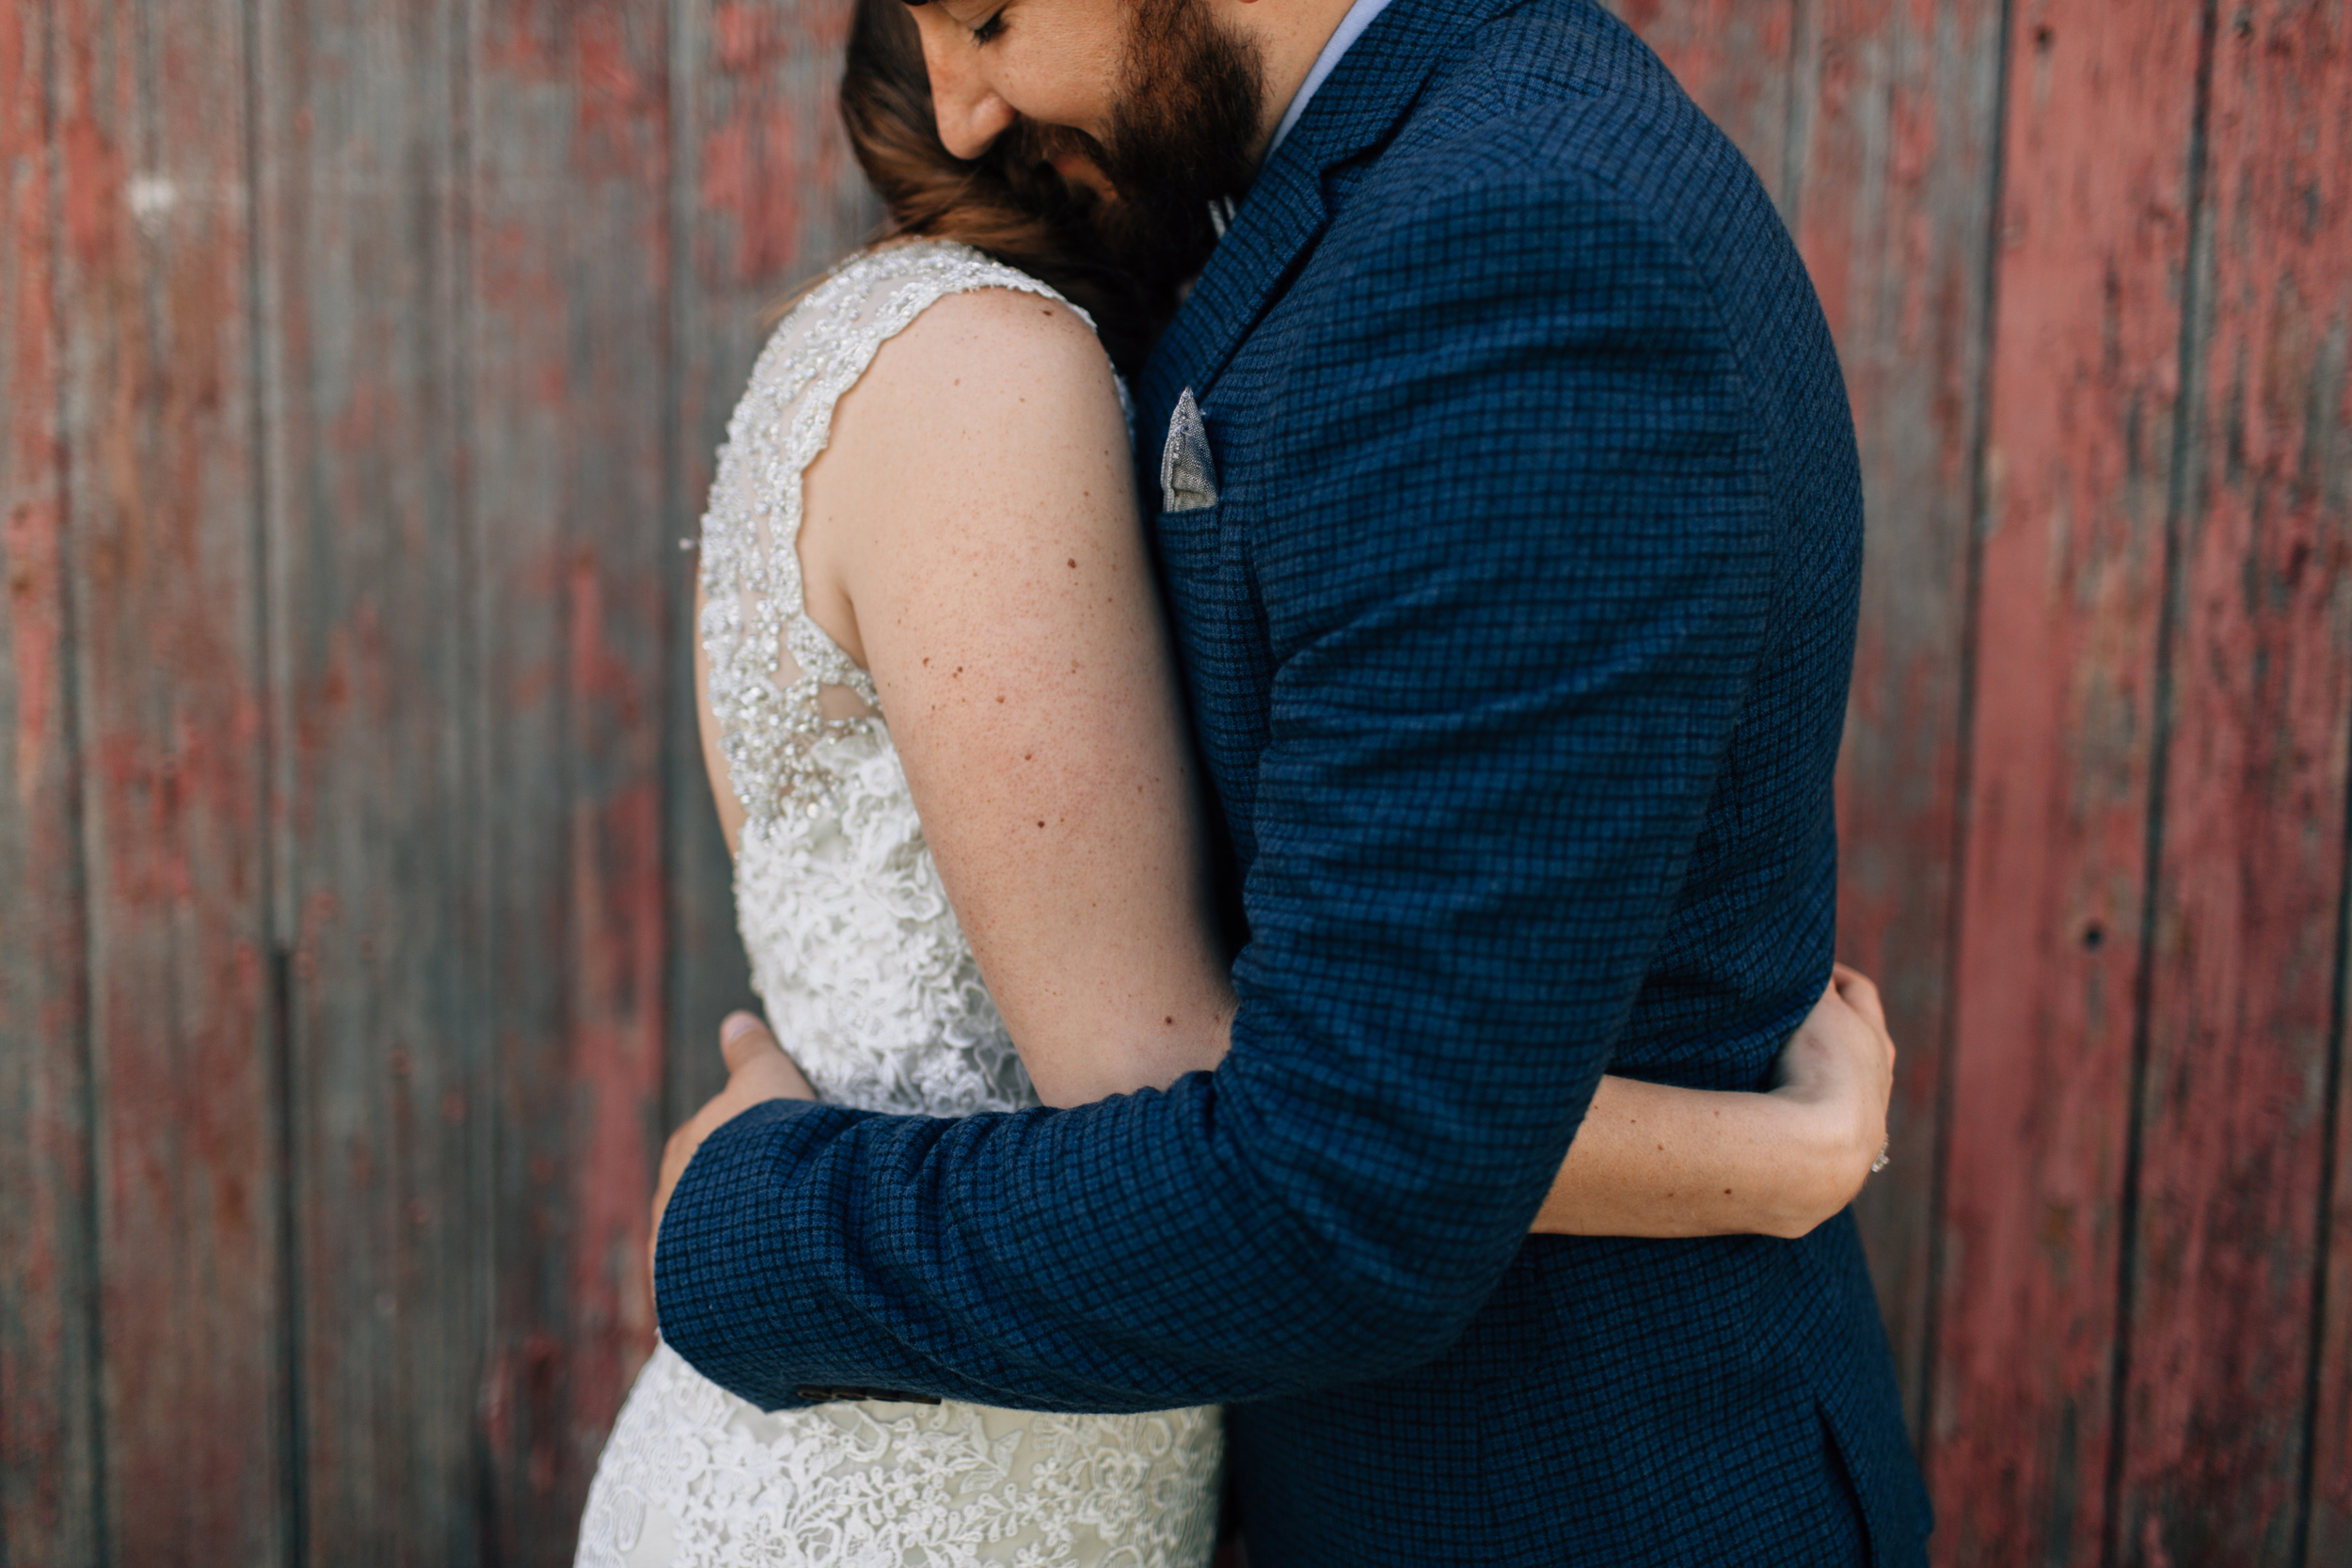 KELLIandBRADweddingJUNE2015 - portraits (51 of 142).jpg